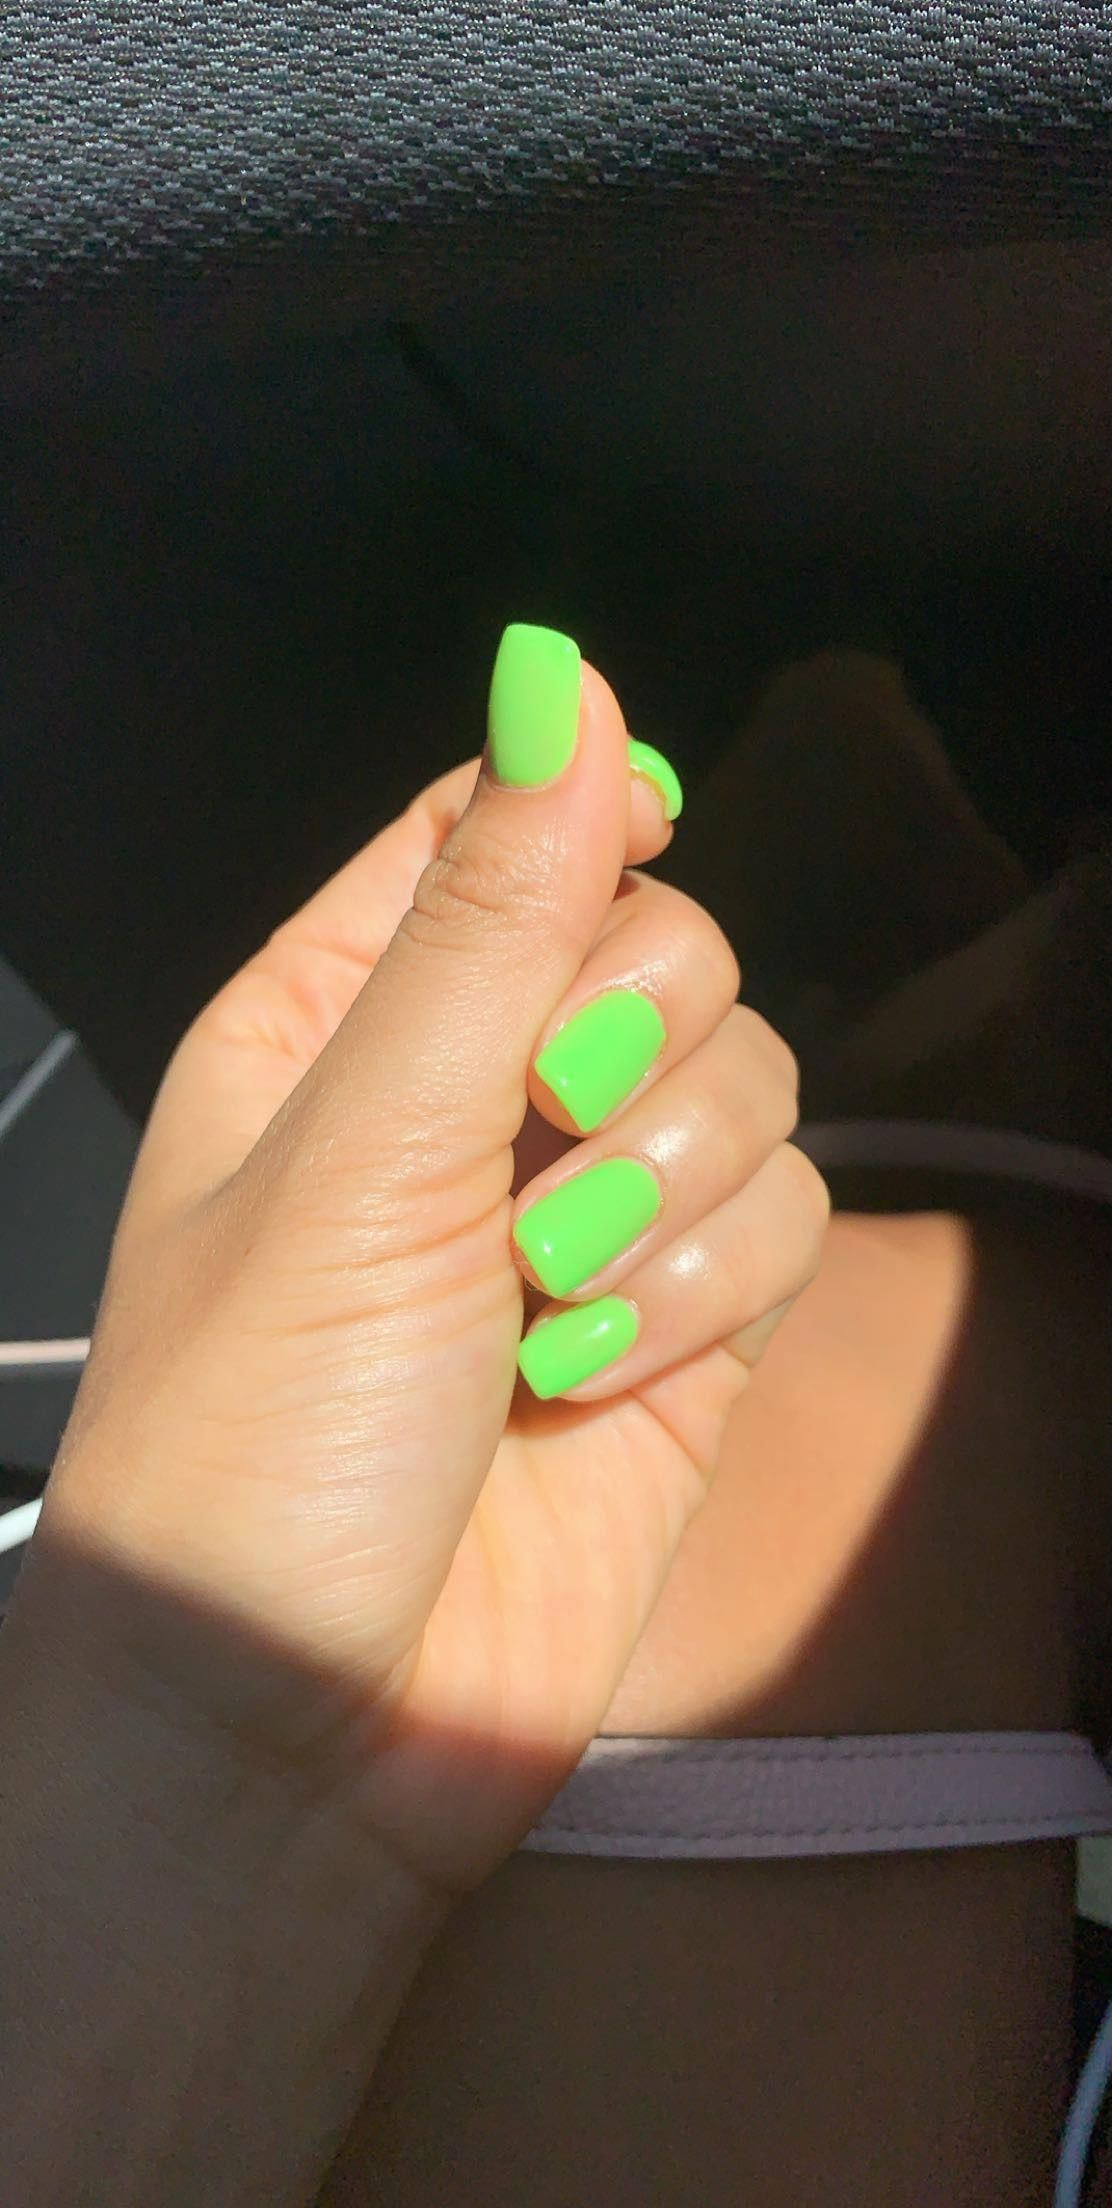 Love Always In 2020 With Images Neon Green Nails Green Nails